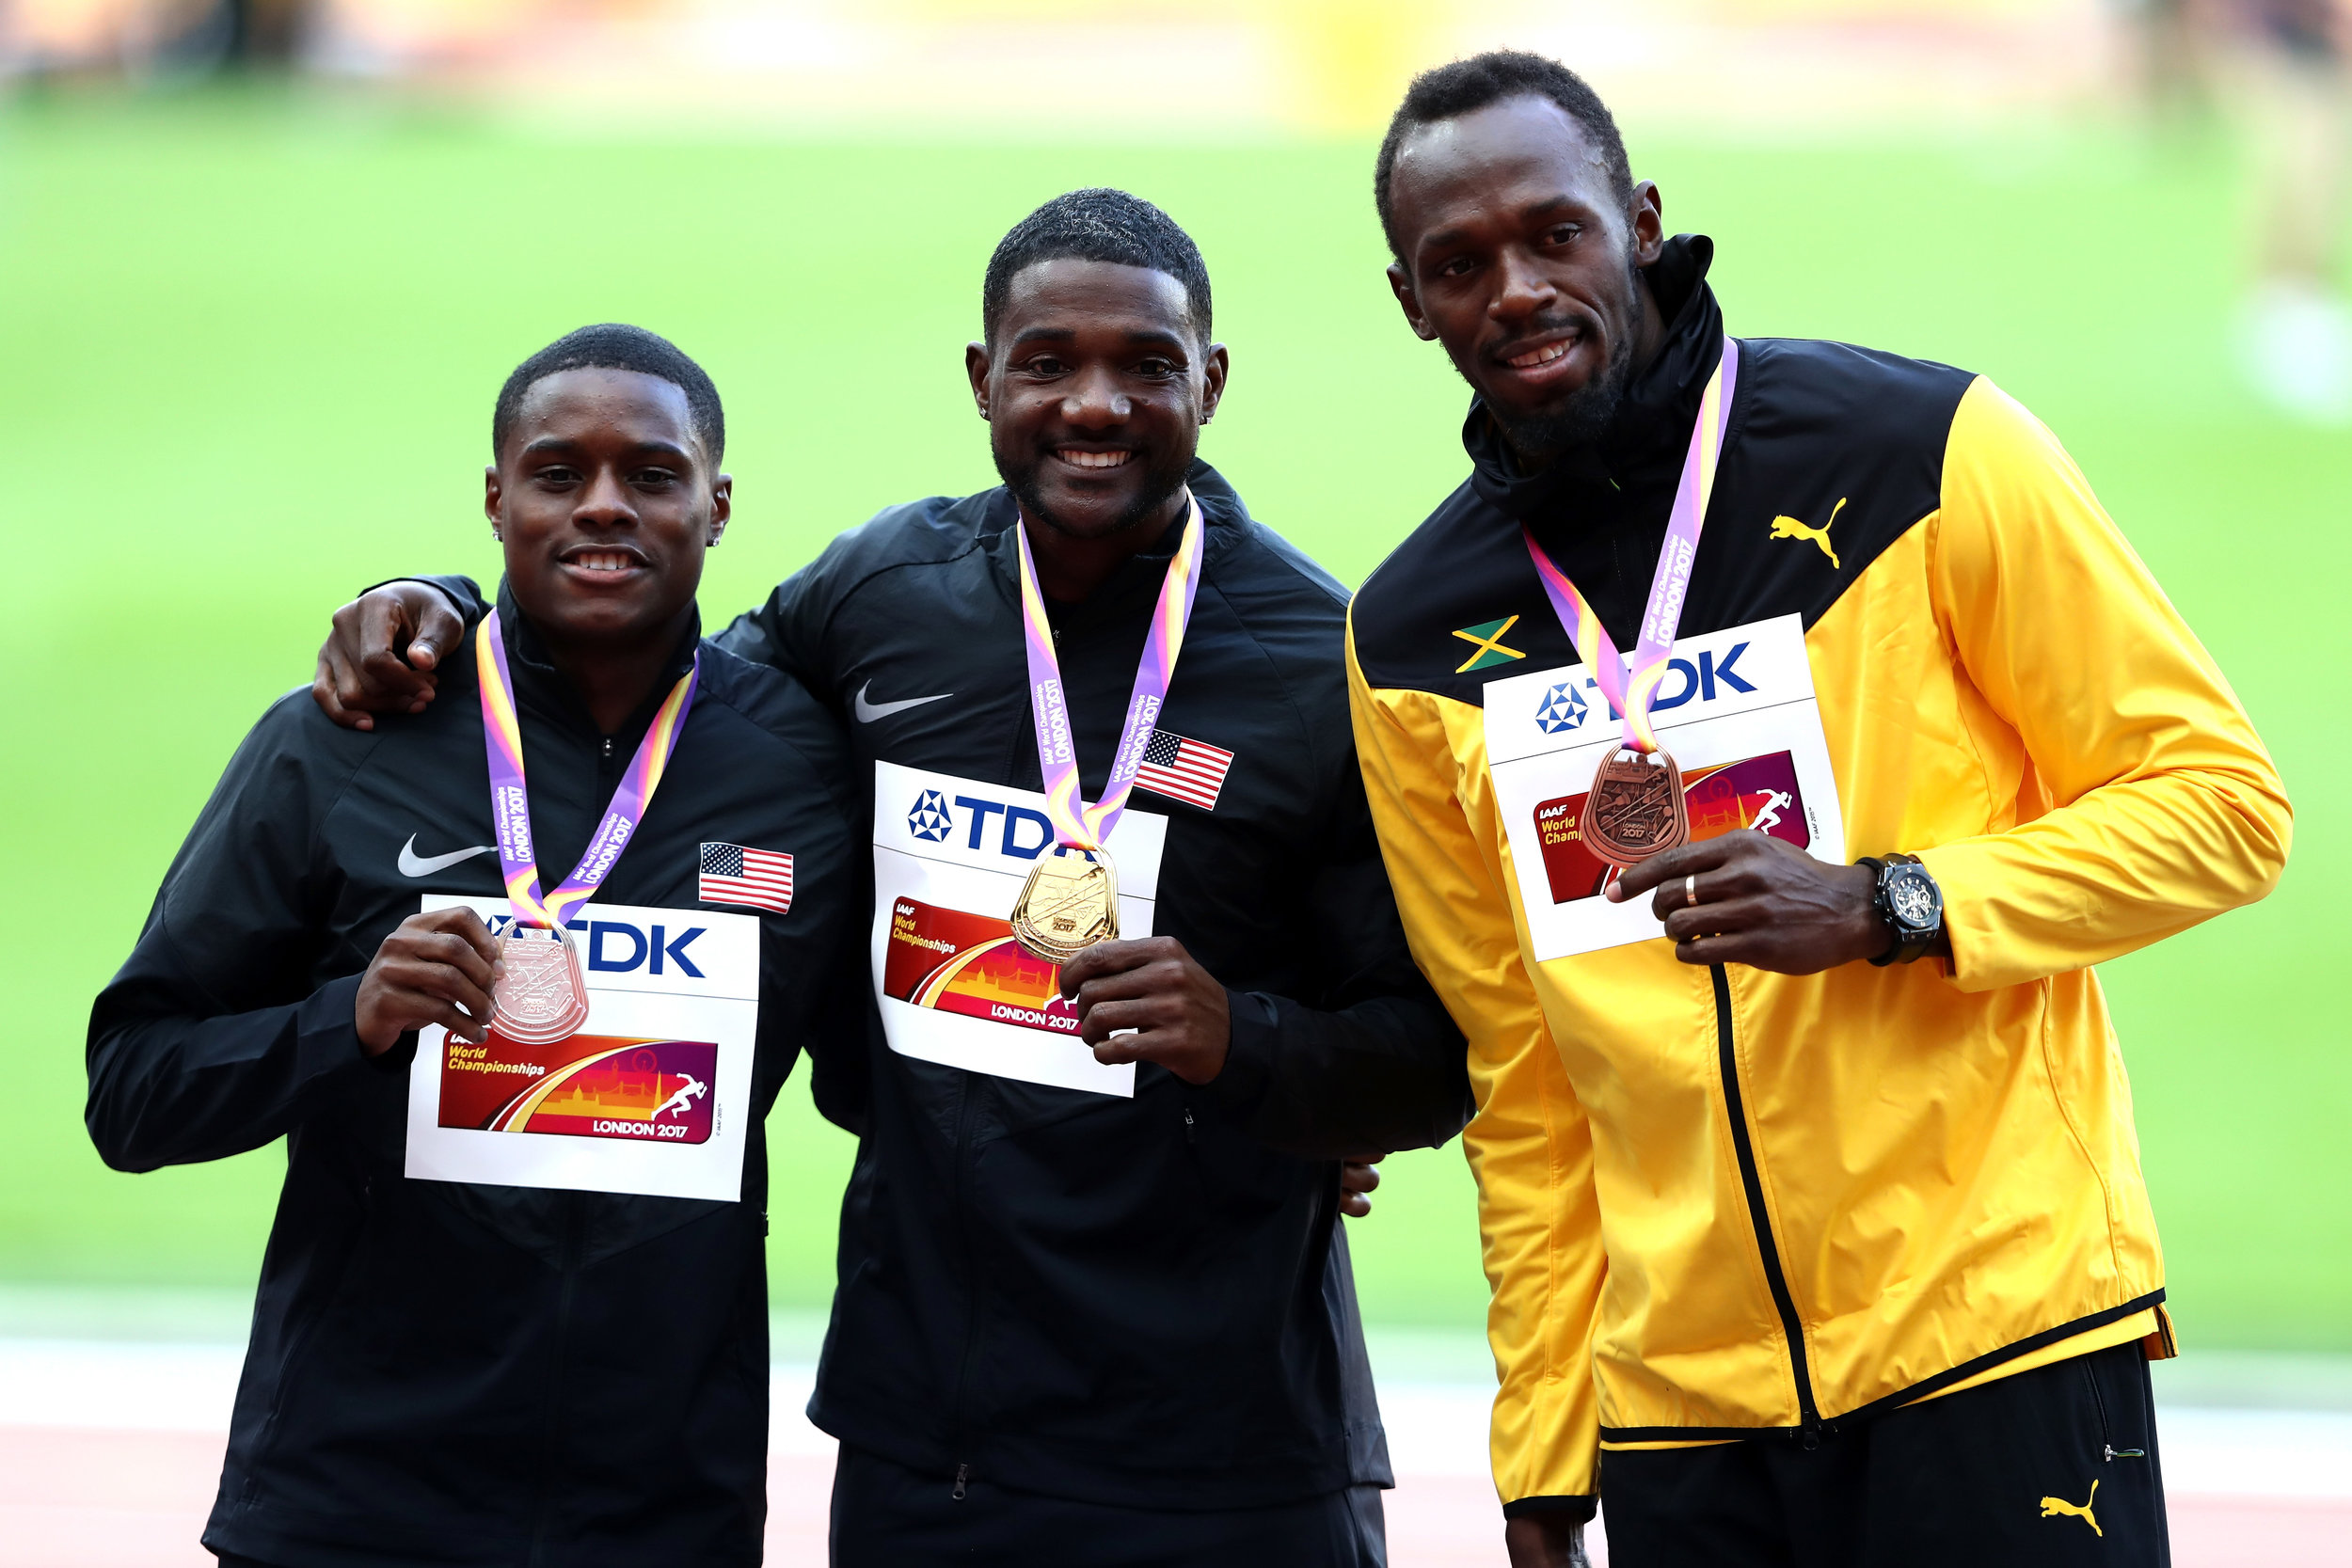 Christian Coleman, Justin Gatlin and Usain Bolt on the medals stand // Getty Images for IAAF